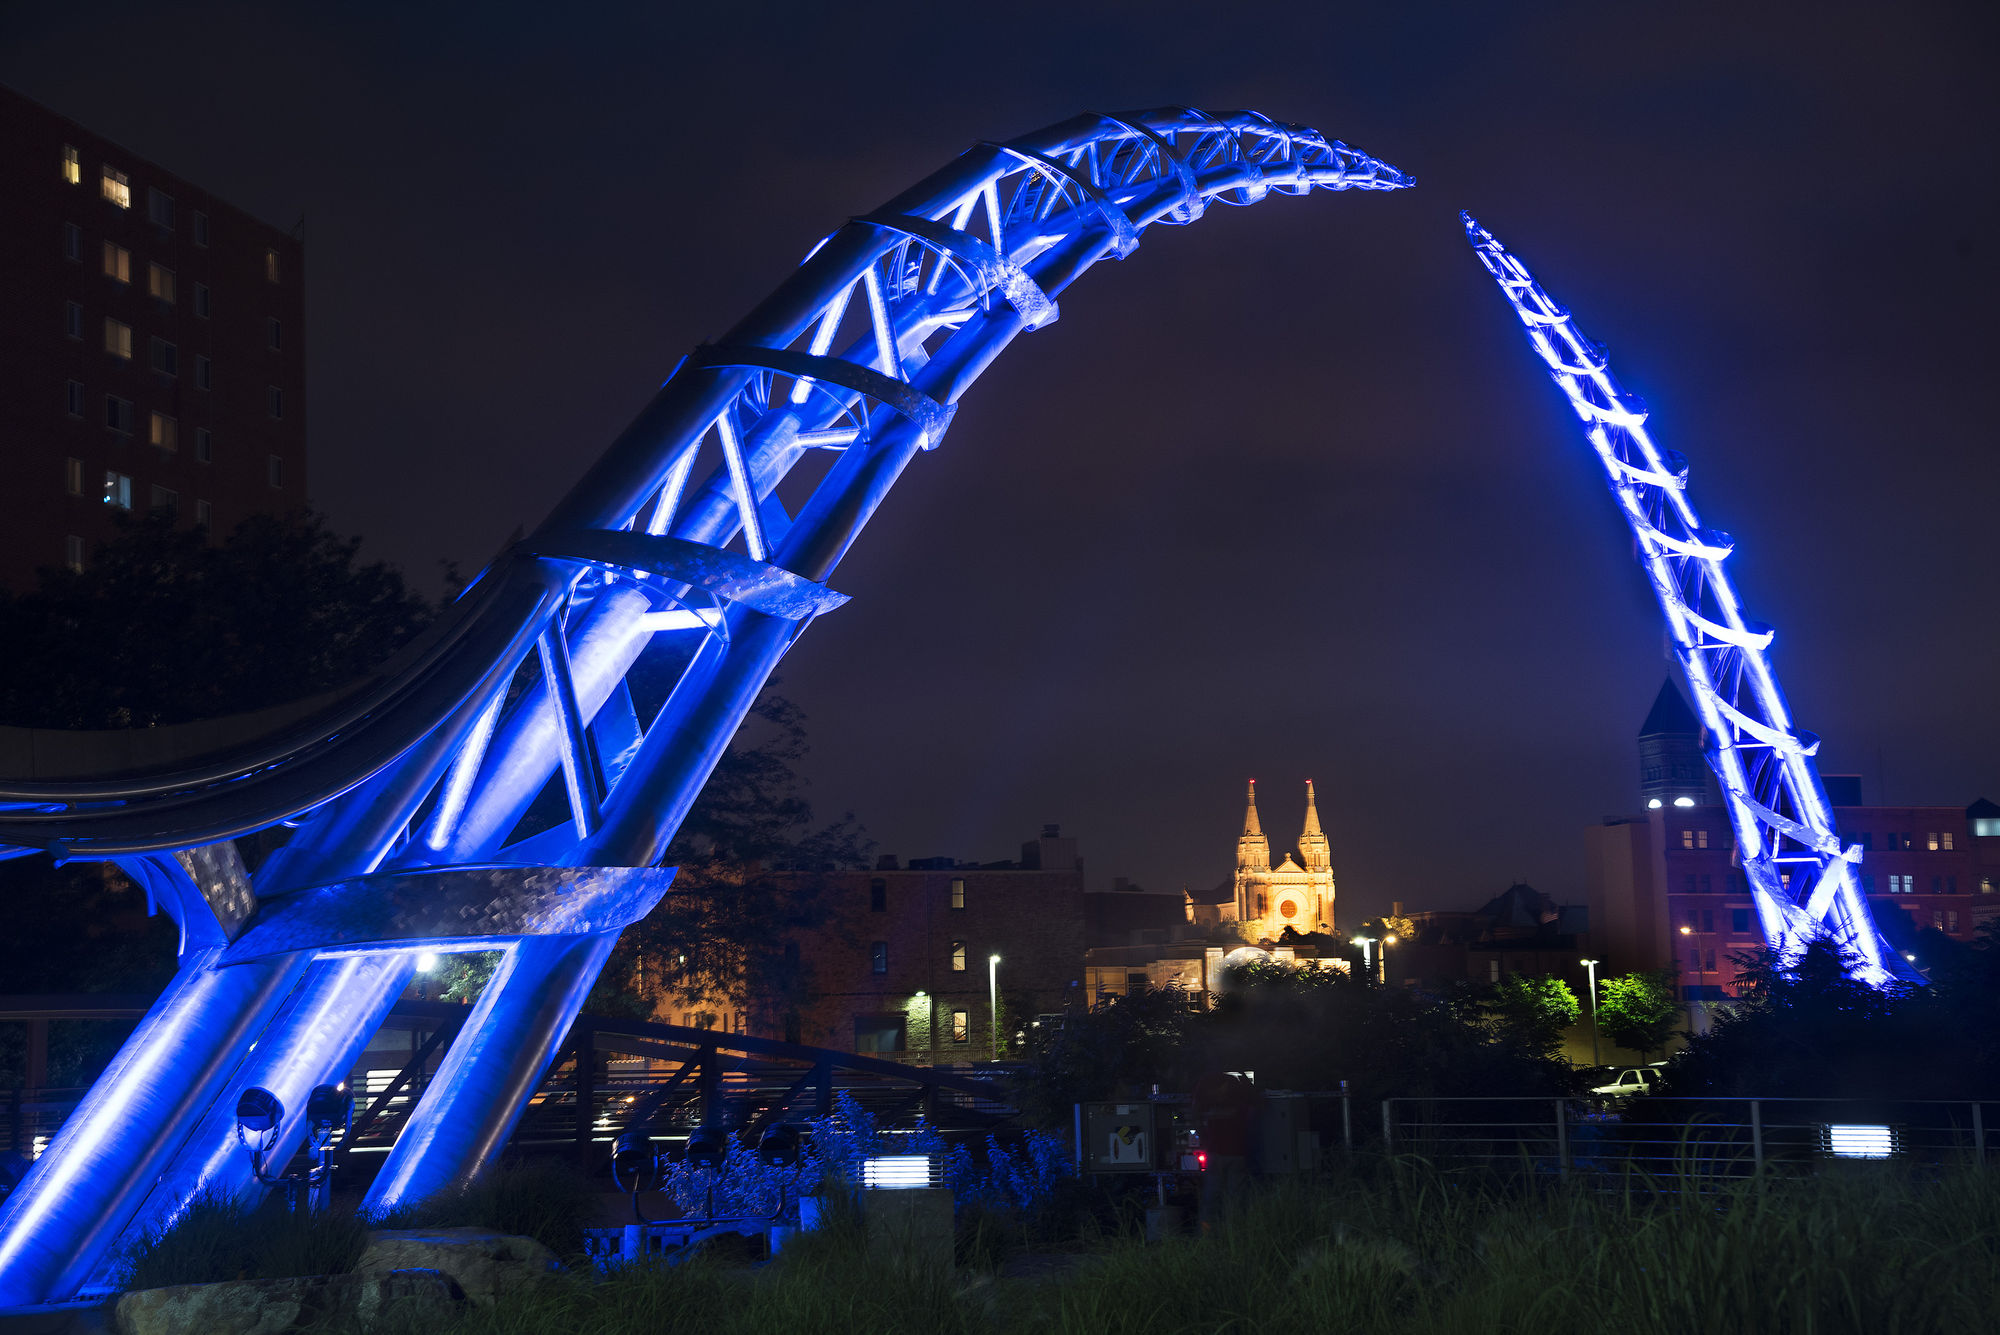 Arc of Dreams in Sioux Falls